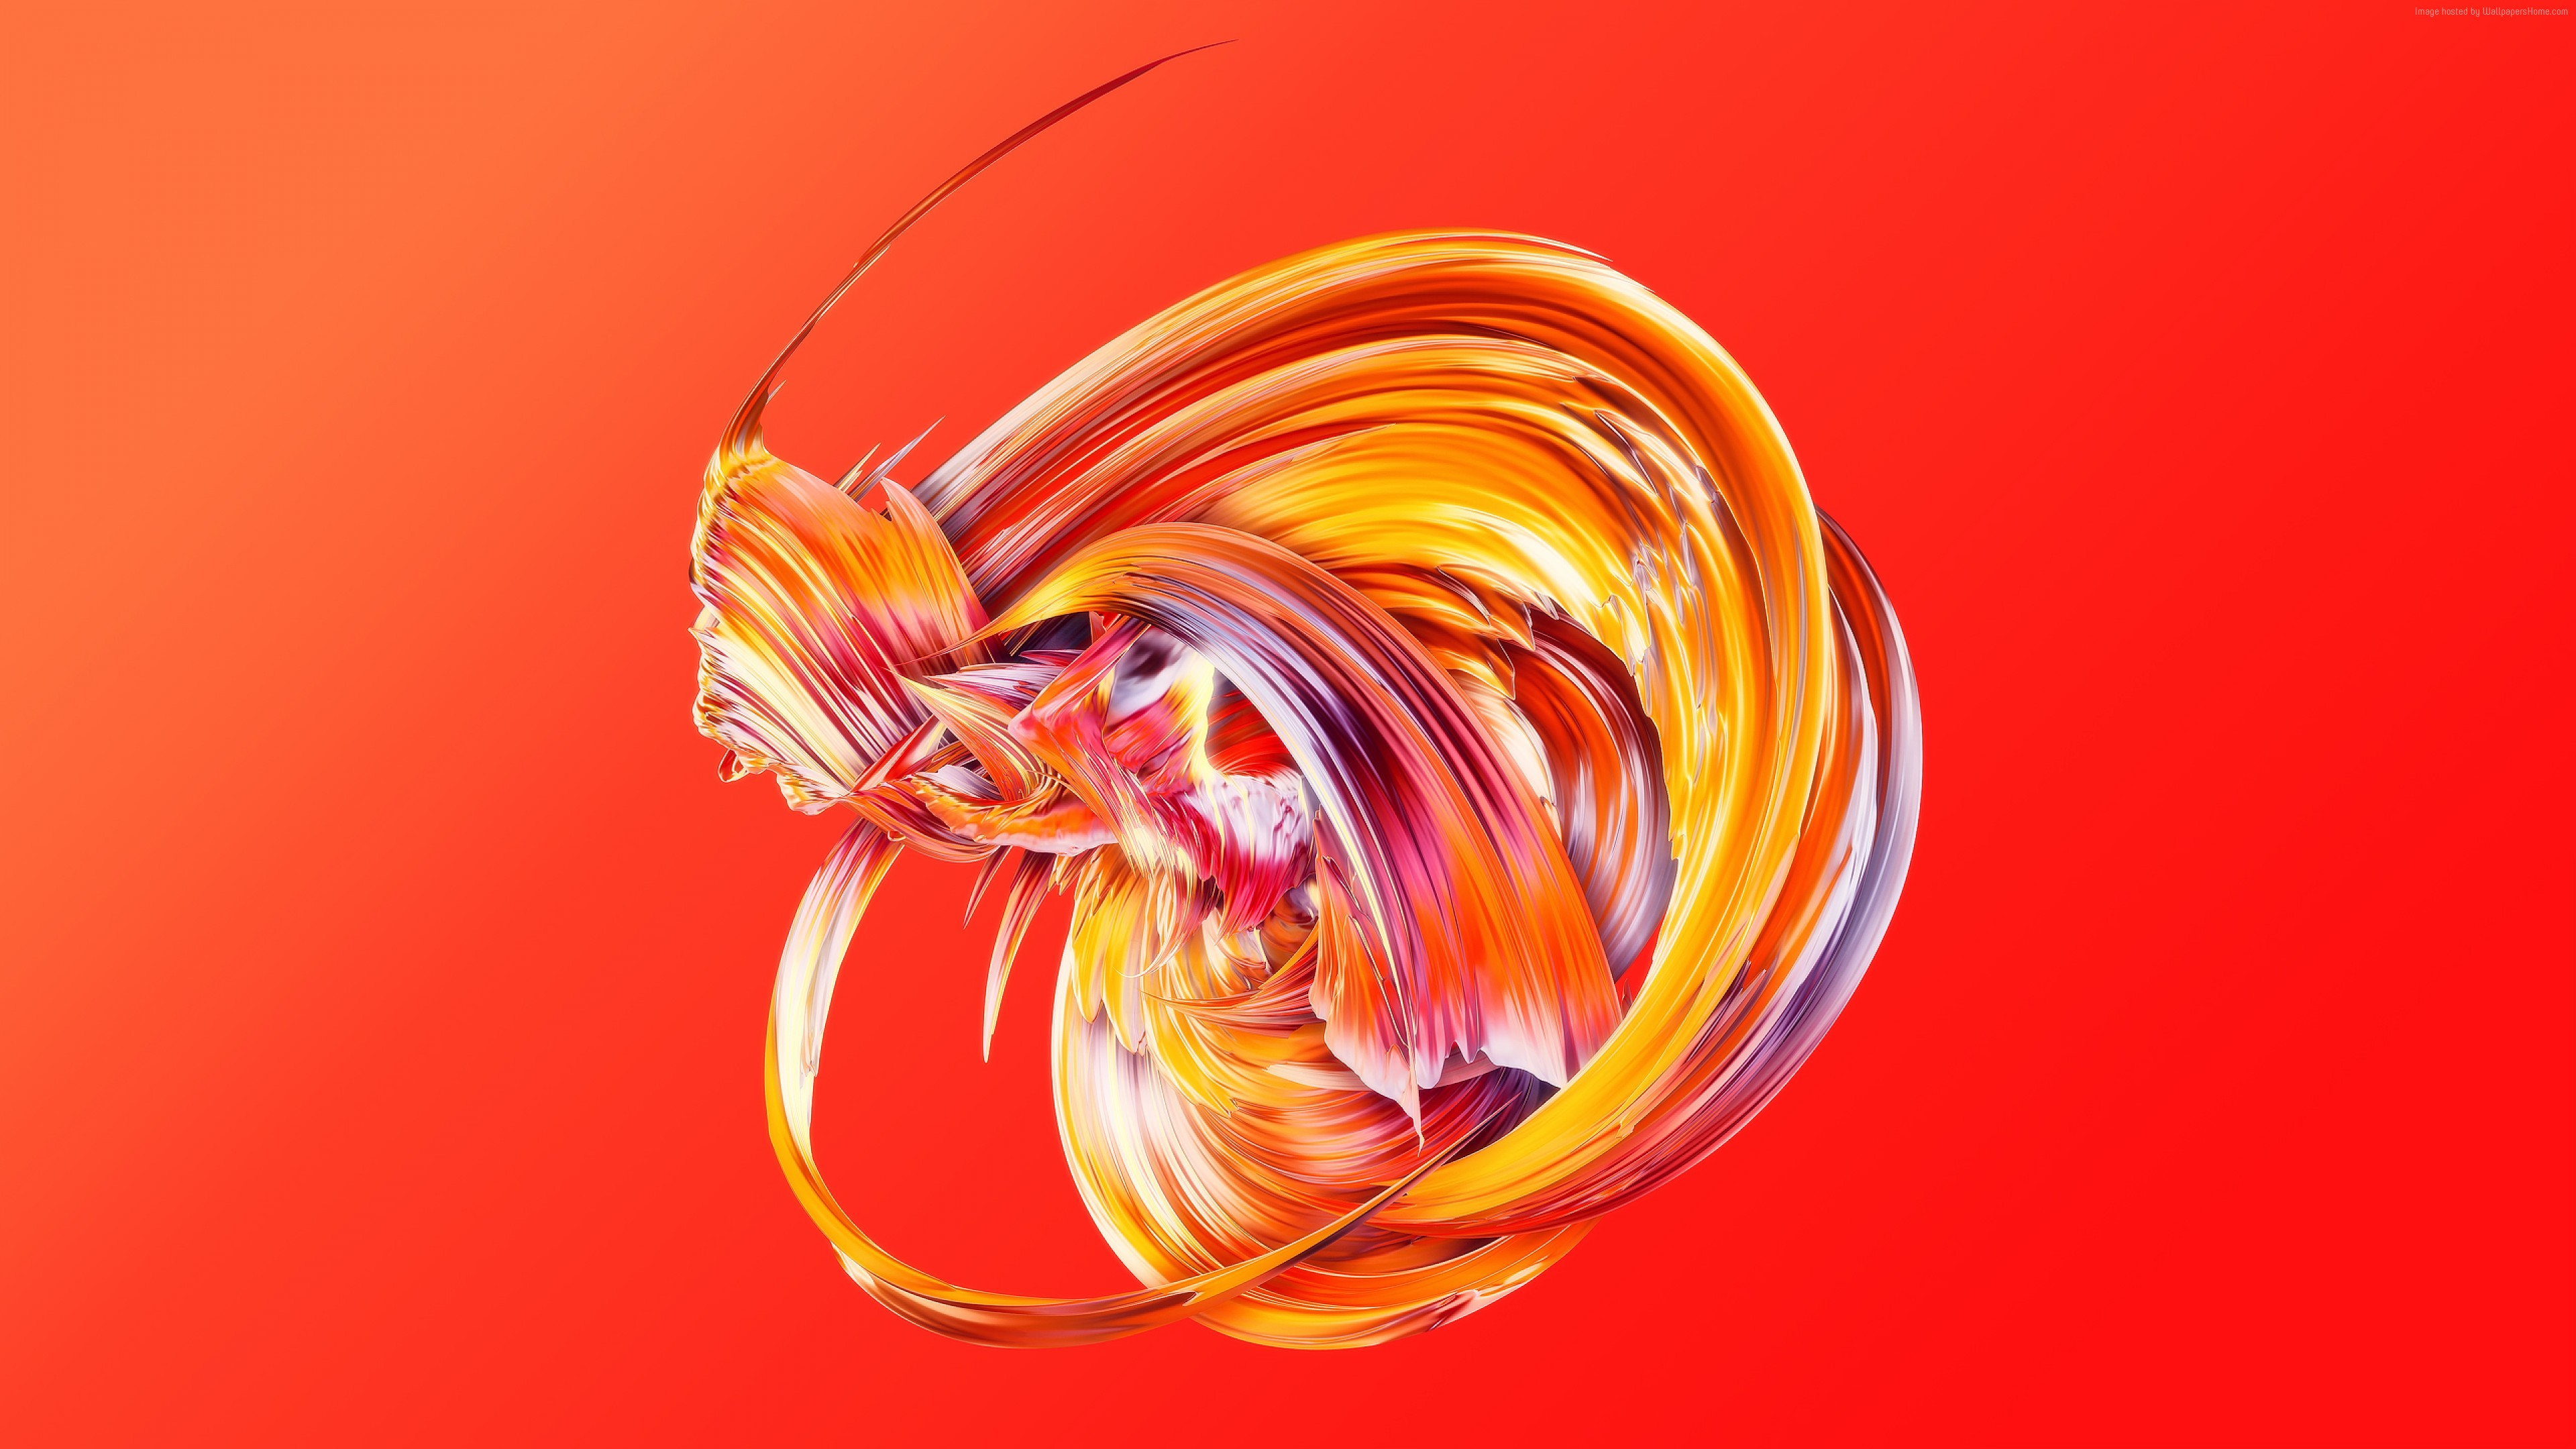 Wallpaper Hd Abstract Paintwaves Red Abstract Wallpaper